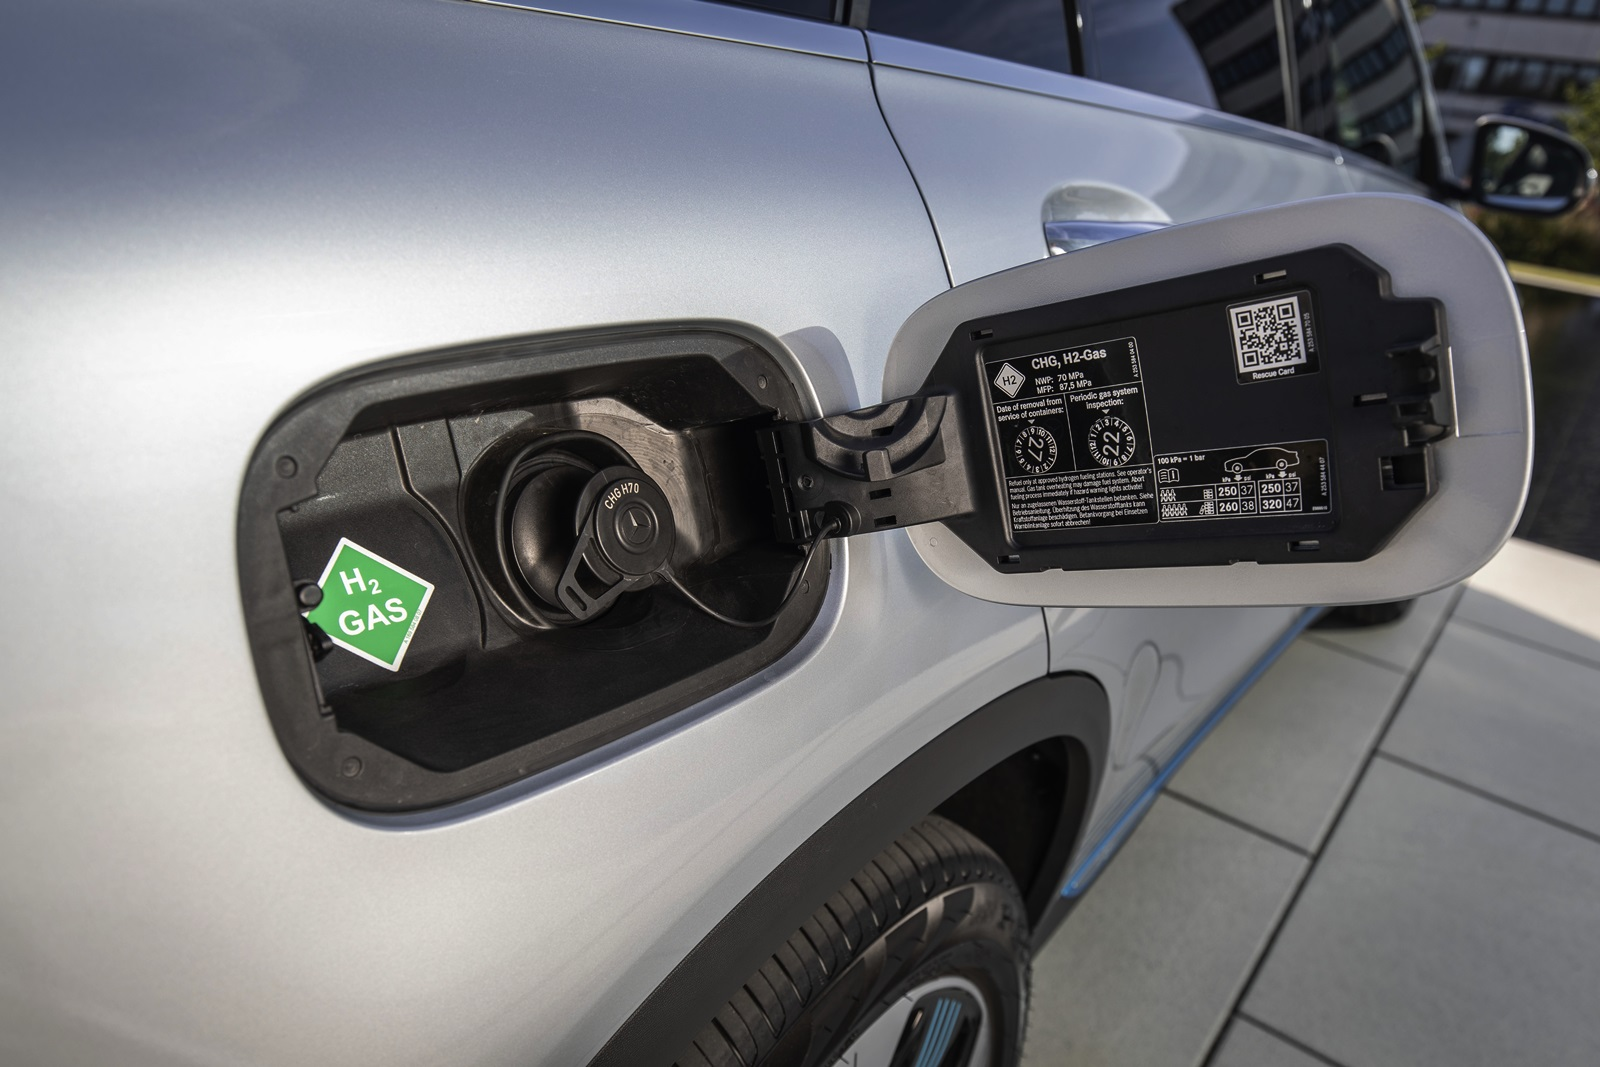 Mercedes Benz Plug In Hybride Die Neue Eq Power Familie Frankfurt 2019 Mercedes Benz Plug In Hybrids The New Eq Power Family Frankfurt, September 2019